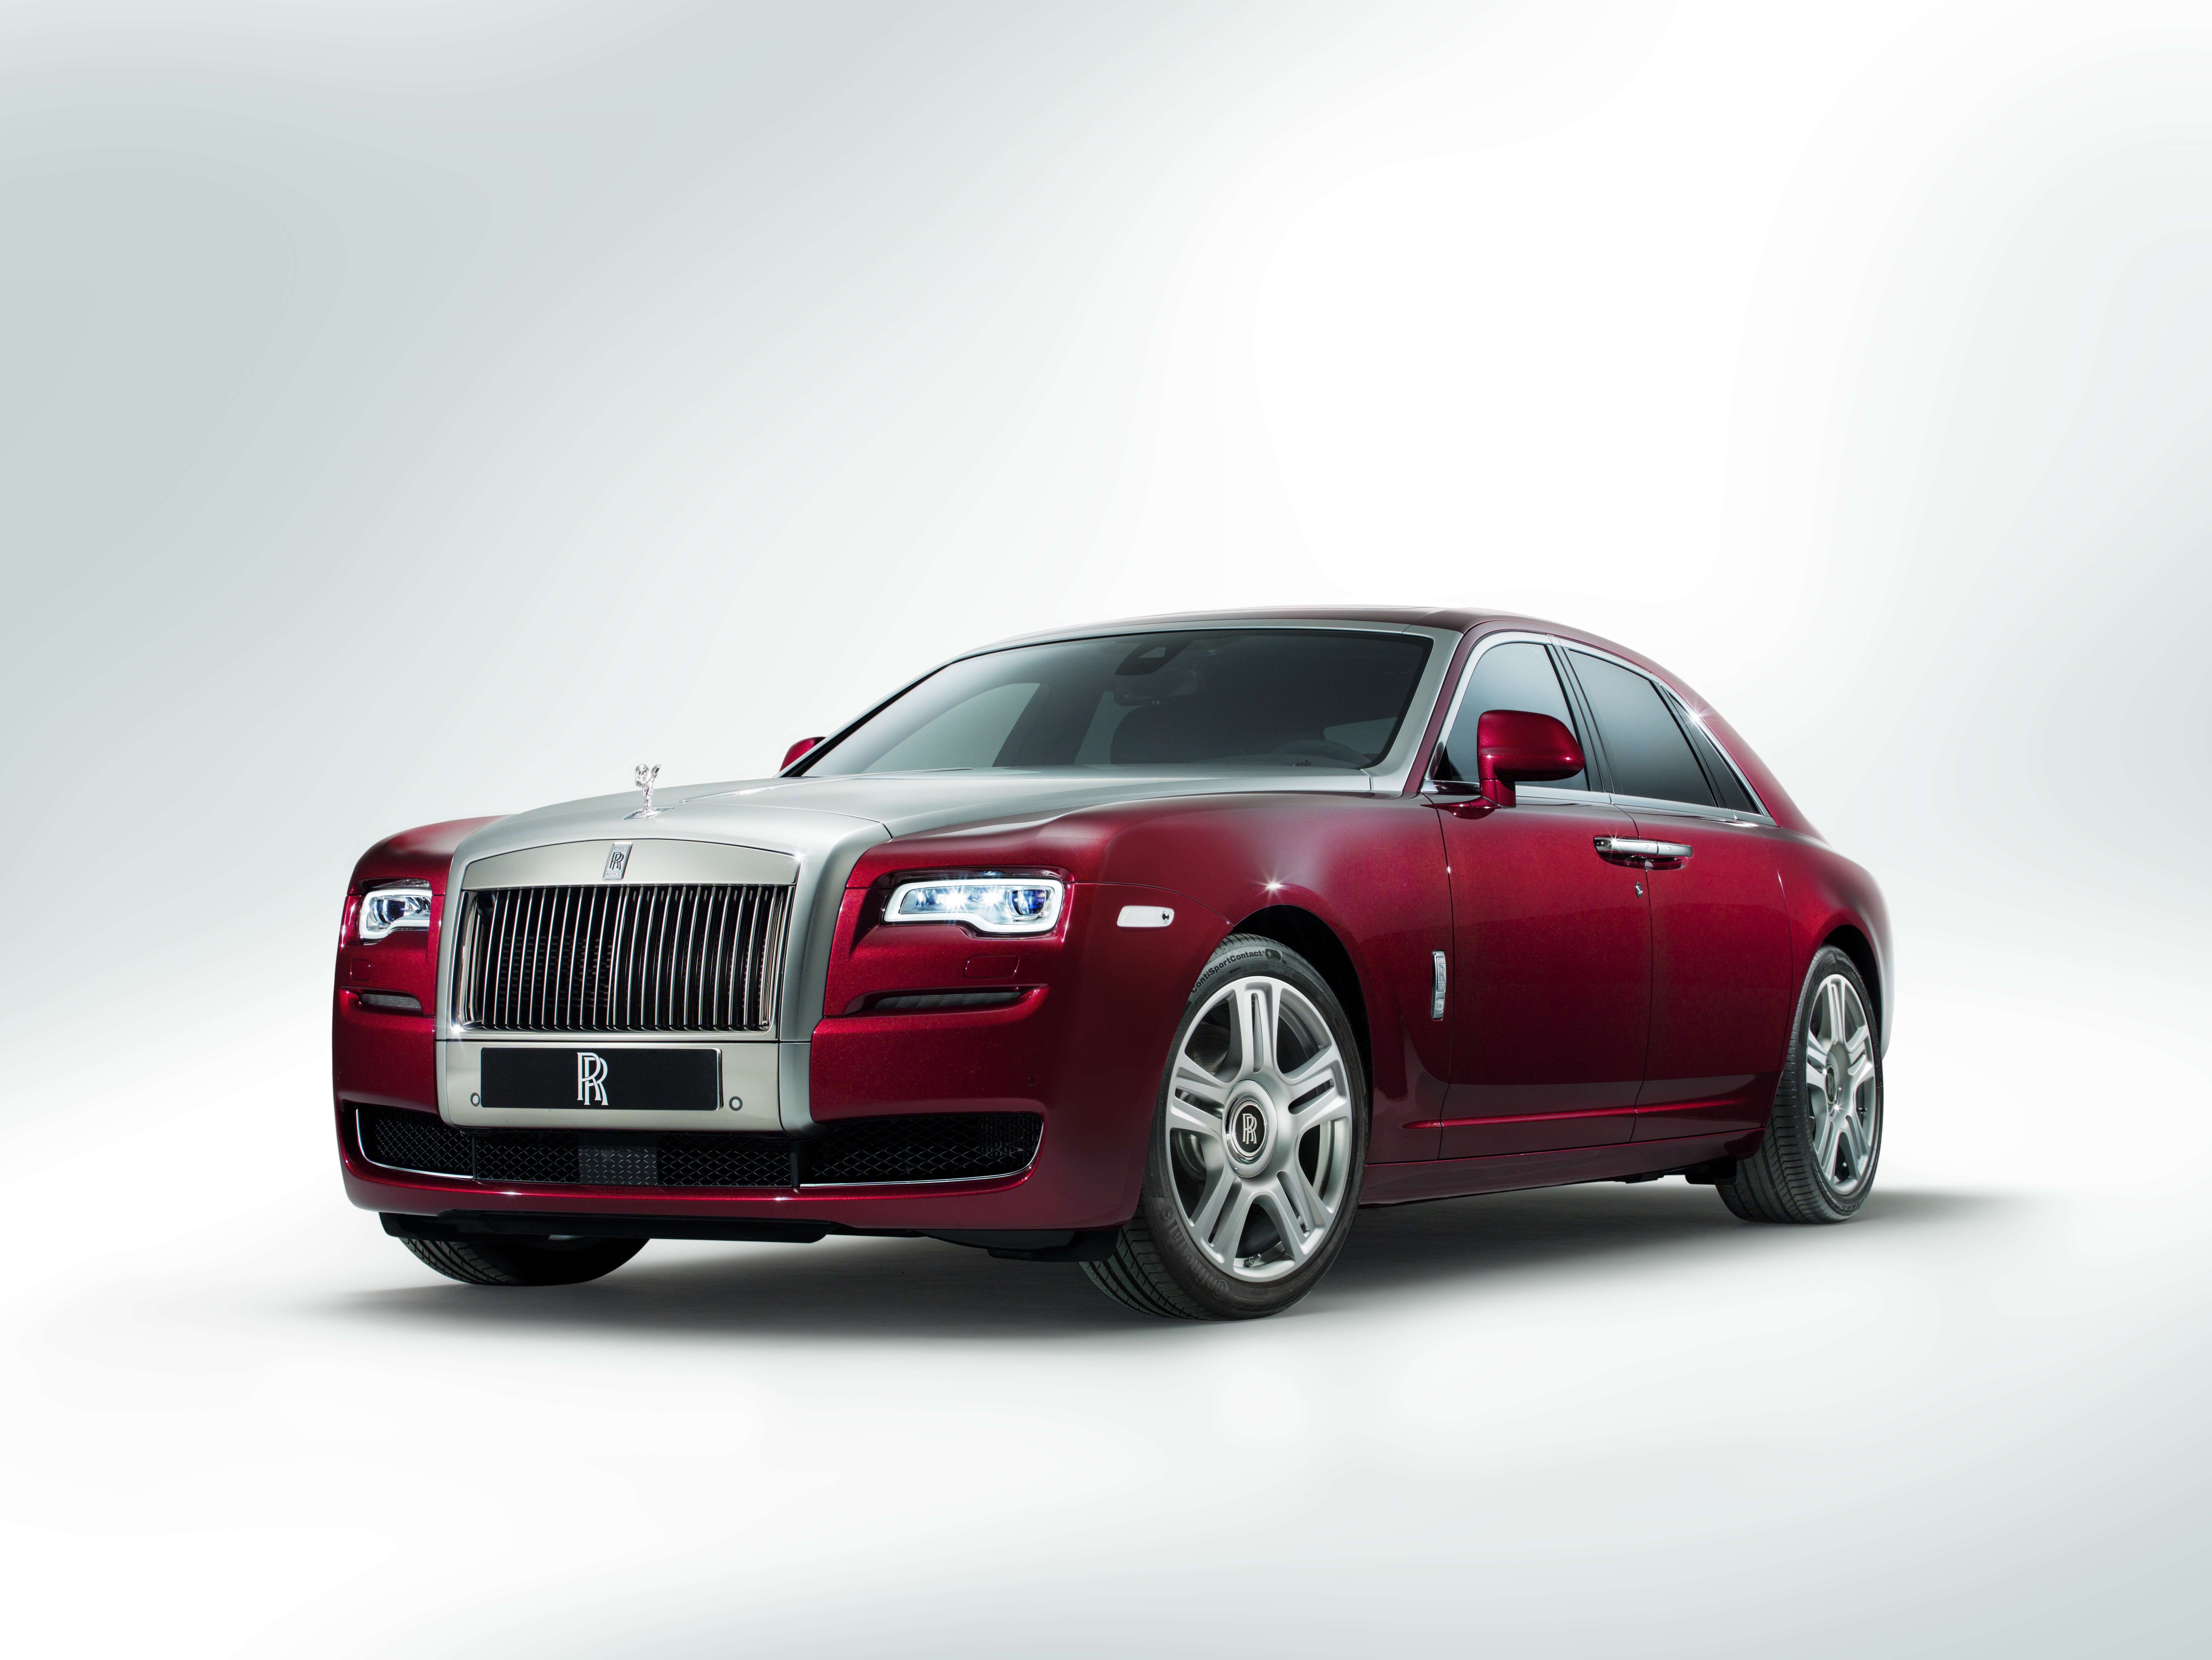 The Rolls-Royce Ghost Series II. The carmaker will make a special bespoke Ghost car to celebrate Singapore's 50th year of independence.